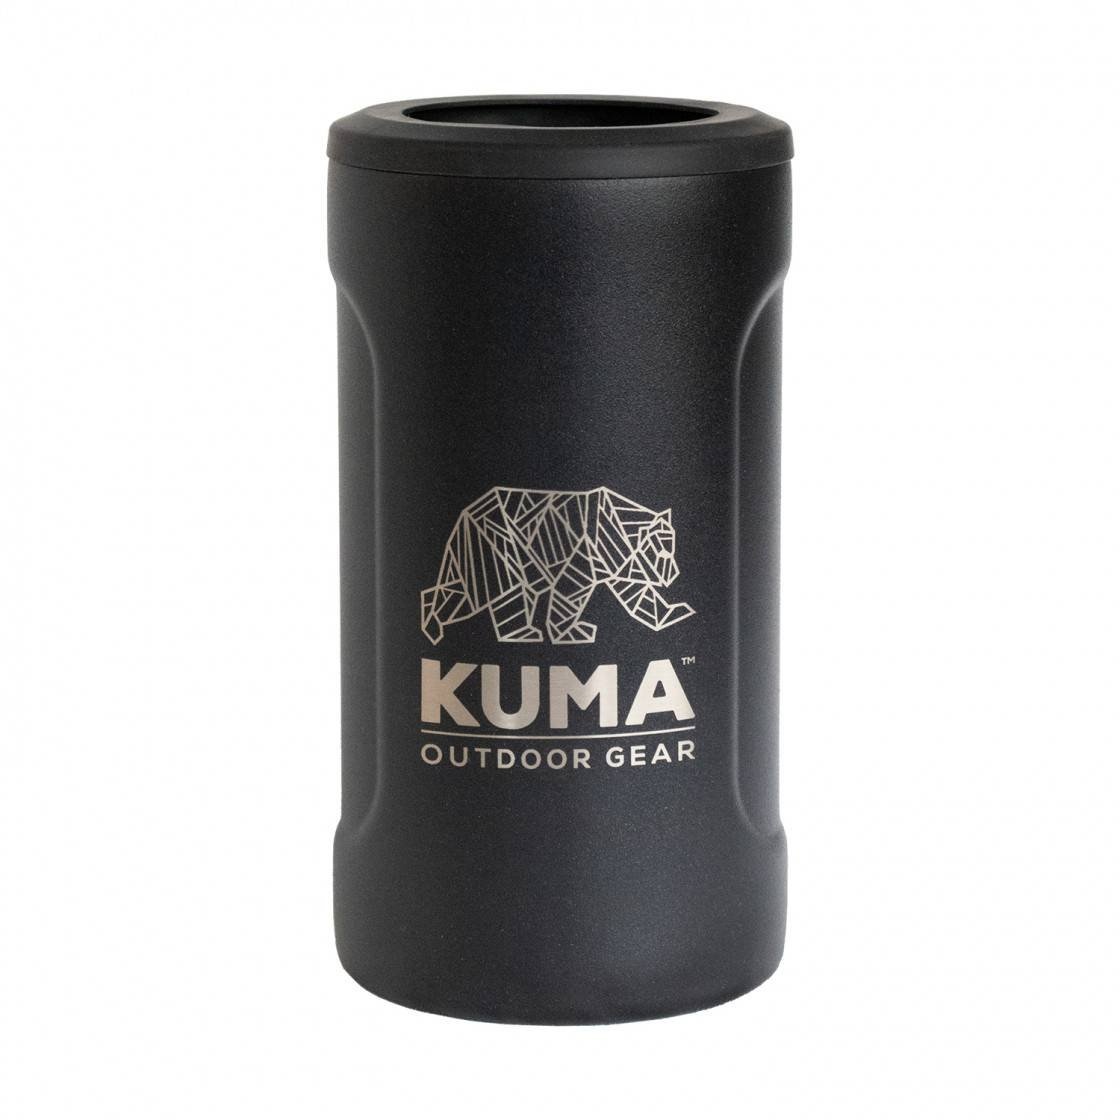 3 in 1 Coozie - Black